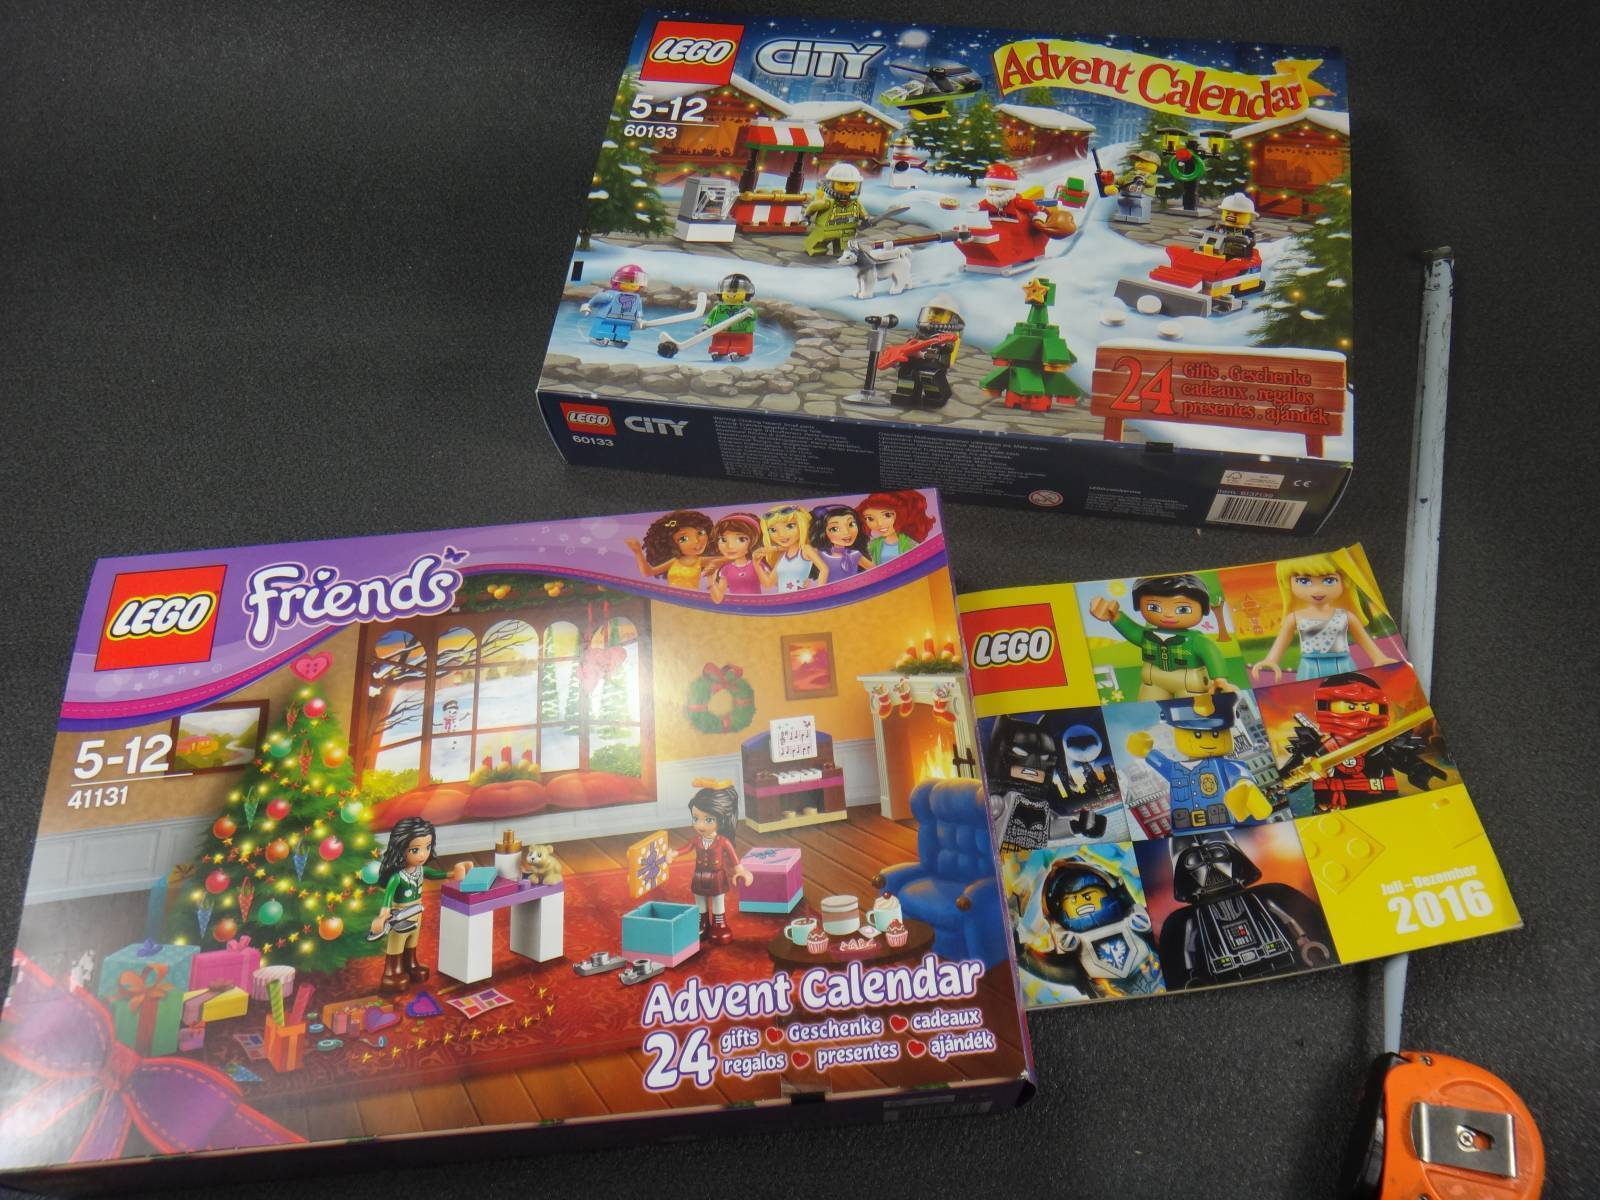 Другие - Европа: Обзор LEGO Advent Calendar рождественский календарь серия City и Friends